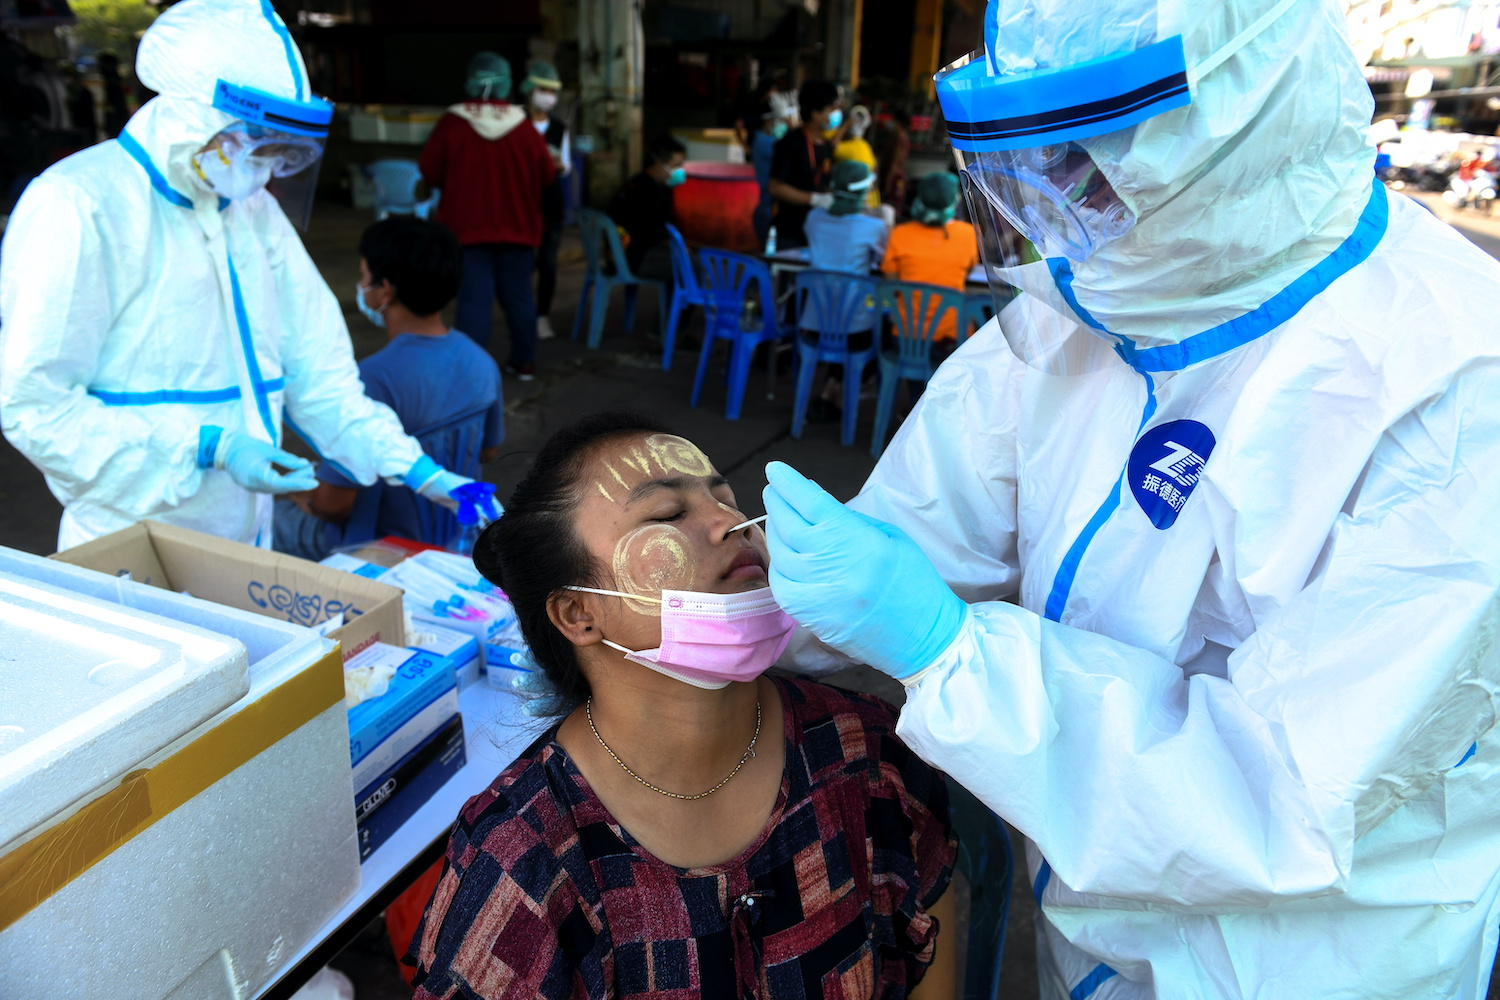 A medical worker takes a test swab from a migrant worker at a seafood market in Mahachai district of Samut Sakhon on Saturday. (Reuters Photo)